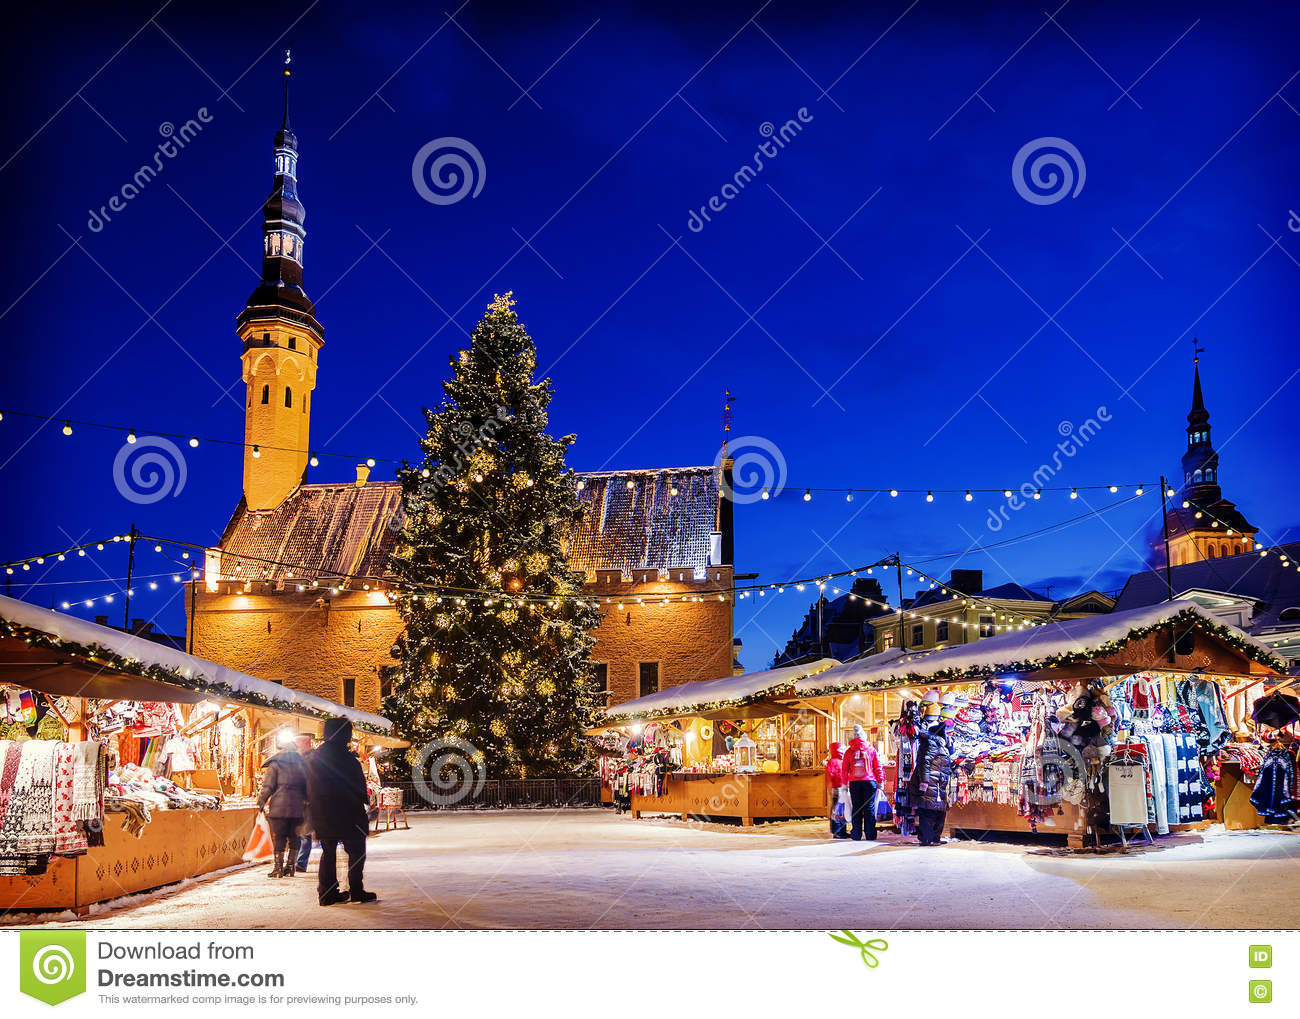 Christmas in Tallinn. Holiday Market at Town Hall Square